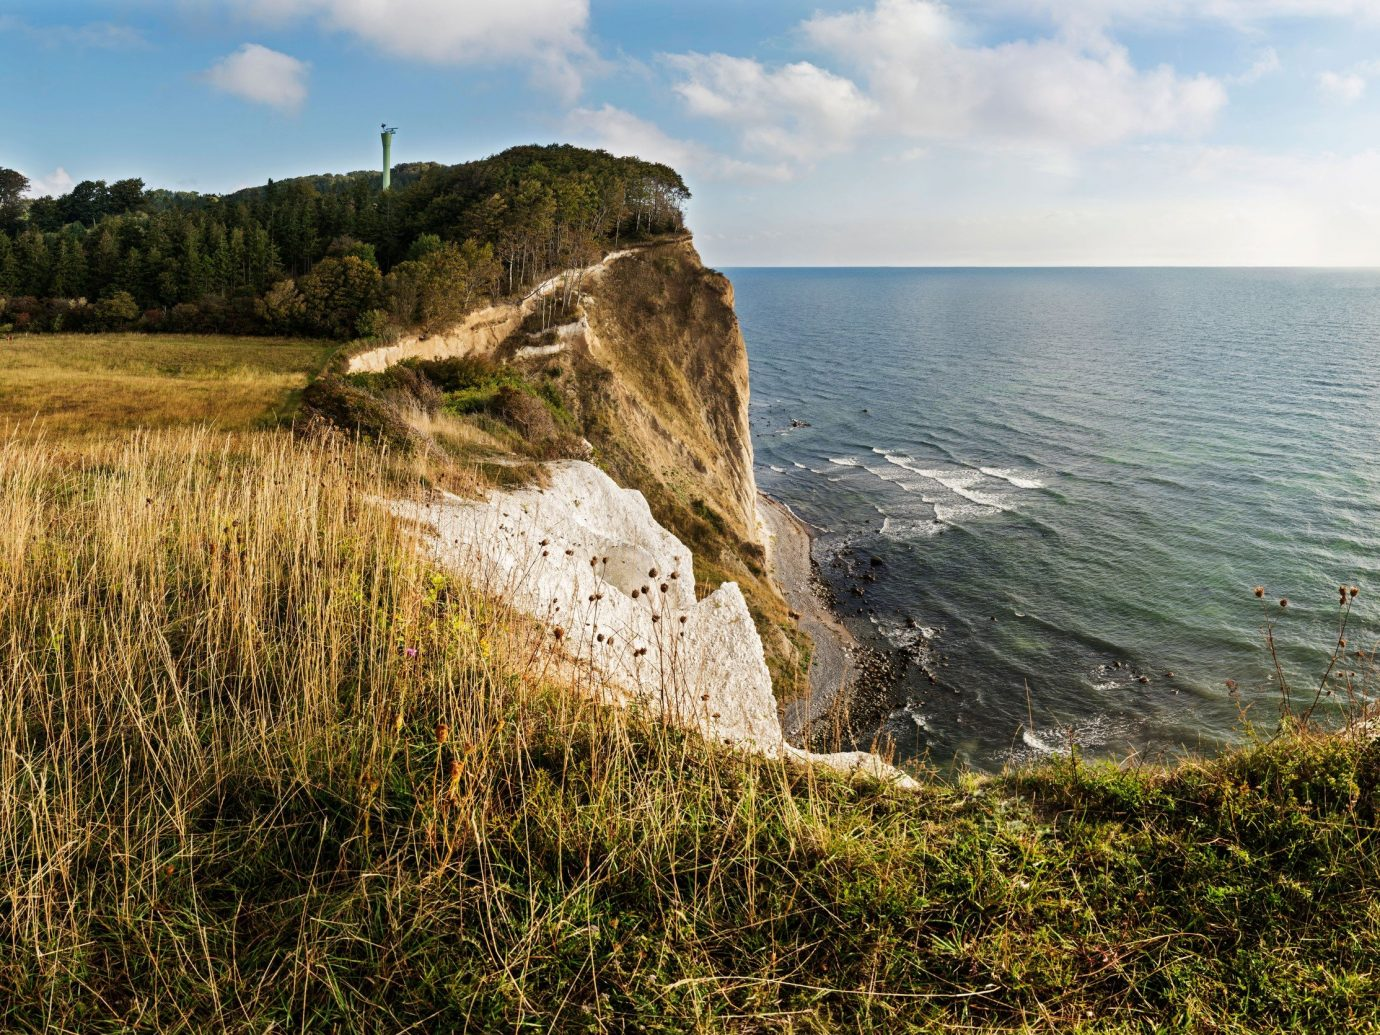 Trip Ideas outdoor sky grass water cliff Coast Nature shore landform geographical feature Sea body of water horizon terrain Ocean rock overlooking hill cape landscape Beach Lake bay cove geology distance